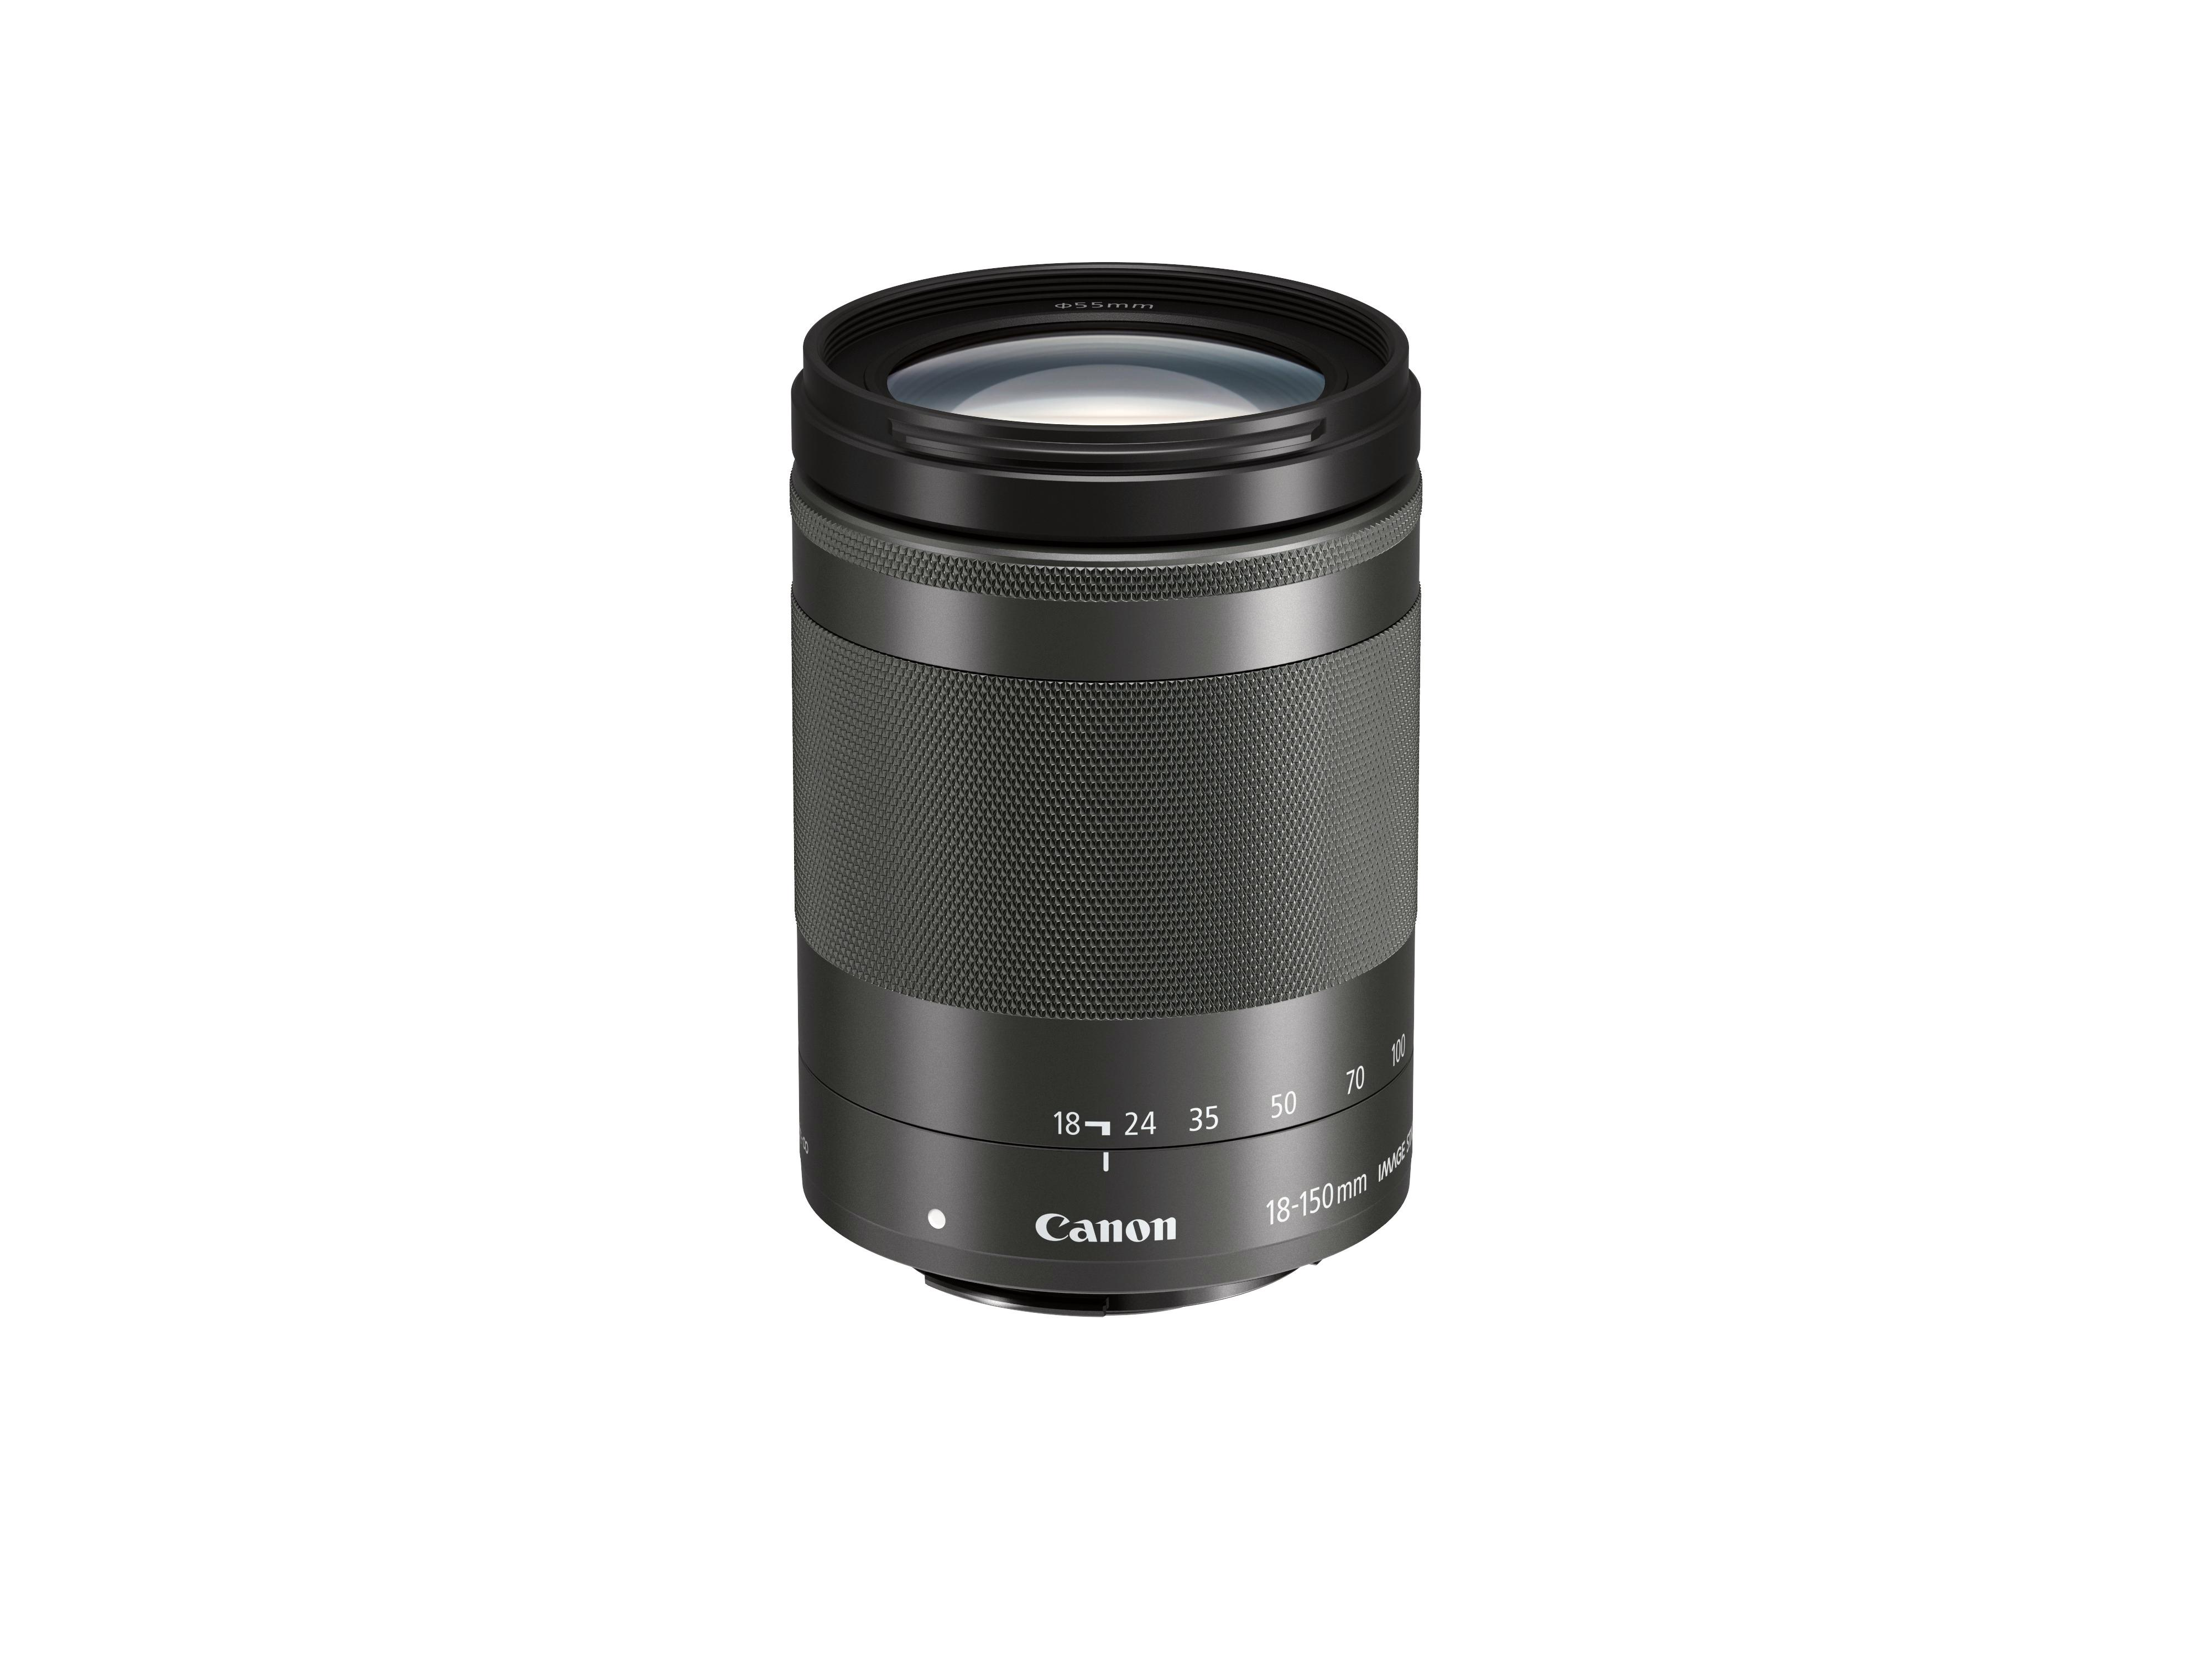 Canon EF-M 18-150mm f3.5-6.3 IS STM.